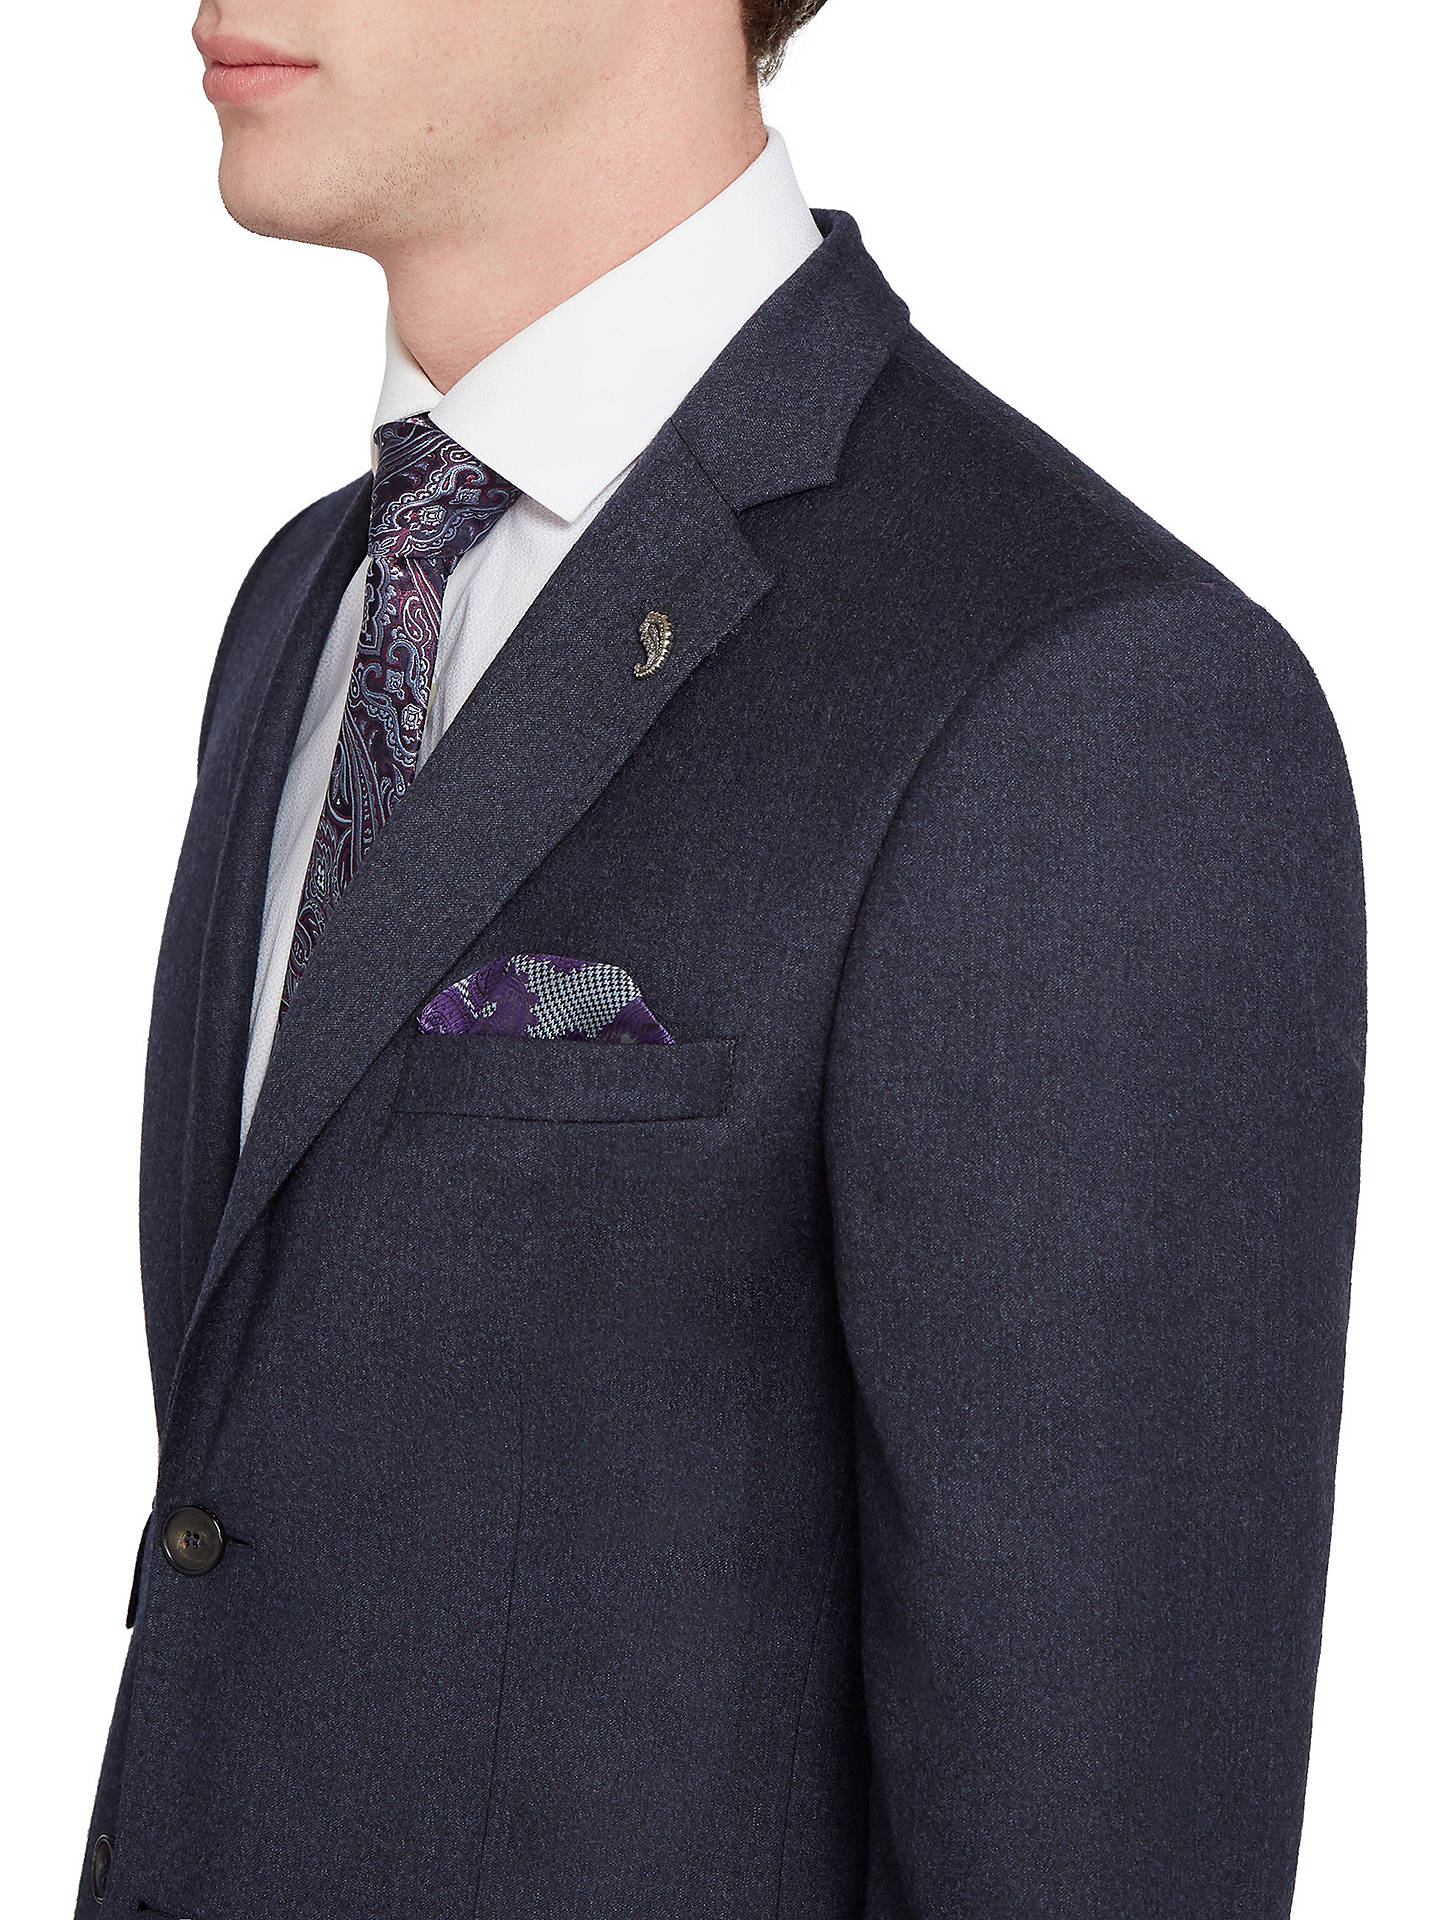 074b1167312a9 ... Buy Ted Baker Caspiaj Sterling Wool Flannel Tailored Suit Jacket